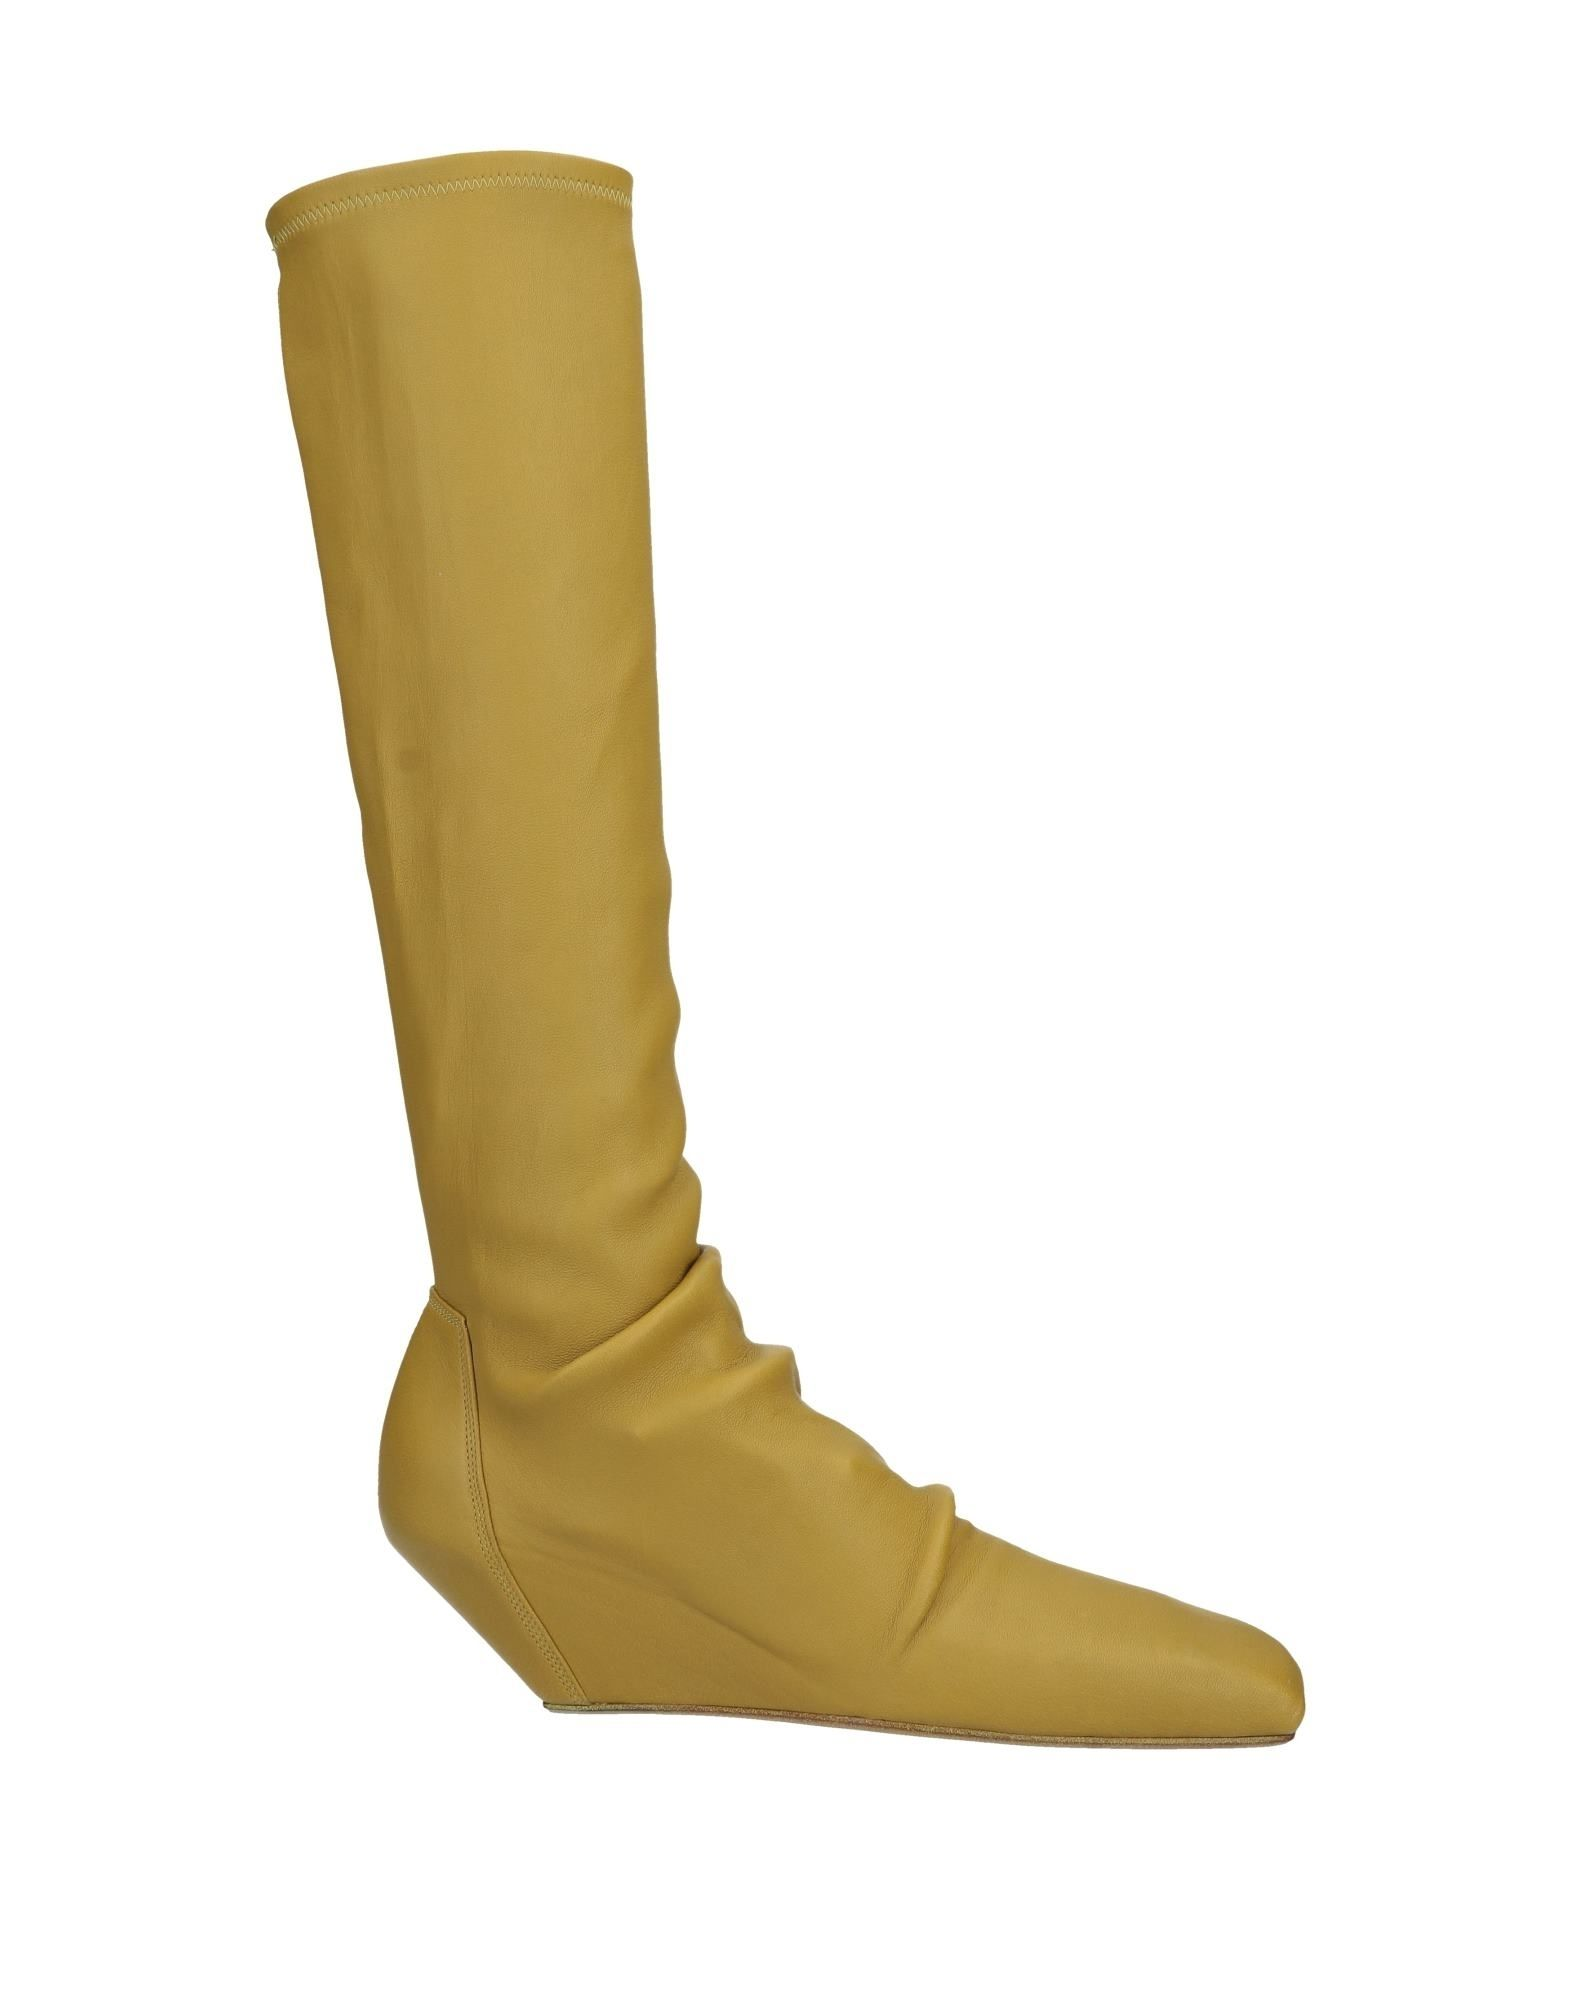 RICK OWENS Boots. leather, textured leather, no appliqués, solid color, wedge heel, internal wedge heel, square toeline, fully lined, leather/rubber sole, contains non-textile parts of animal origin. Soft Leather